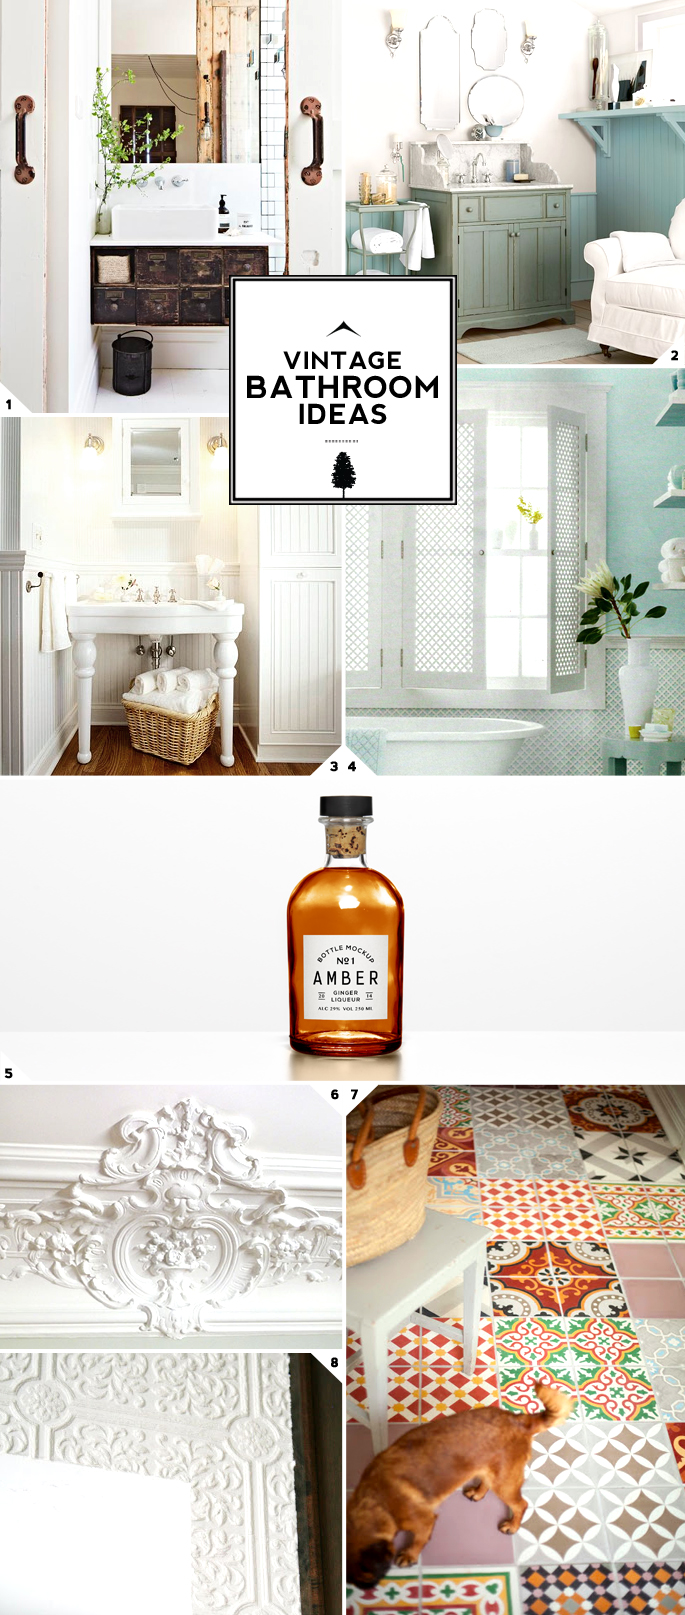 Vintage bathroom ideas 16 stunning designs of vintage for Antique bathroom decorating ideas